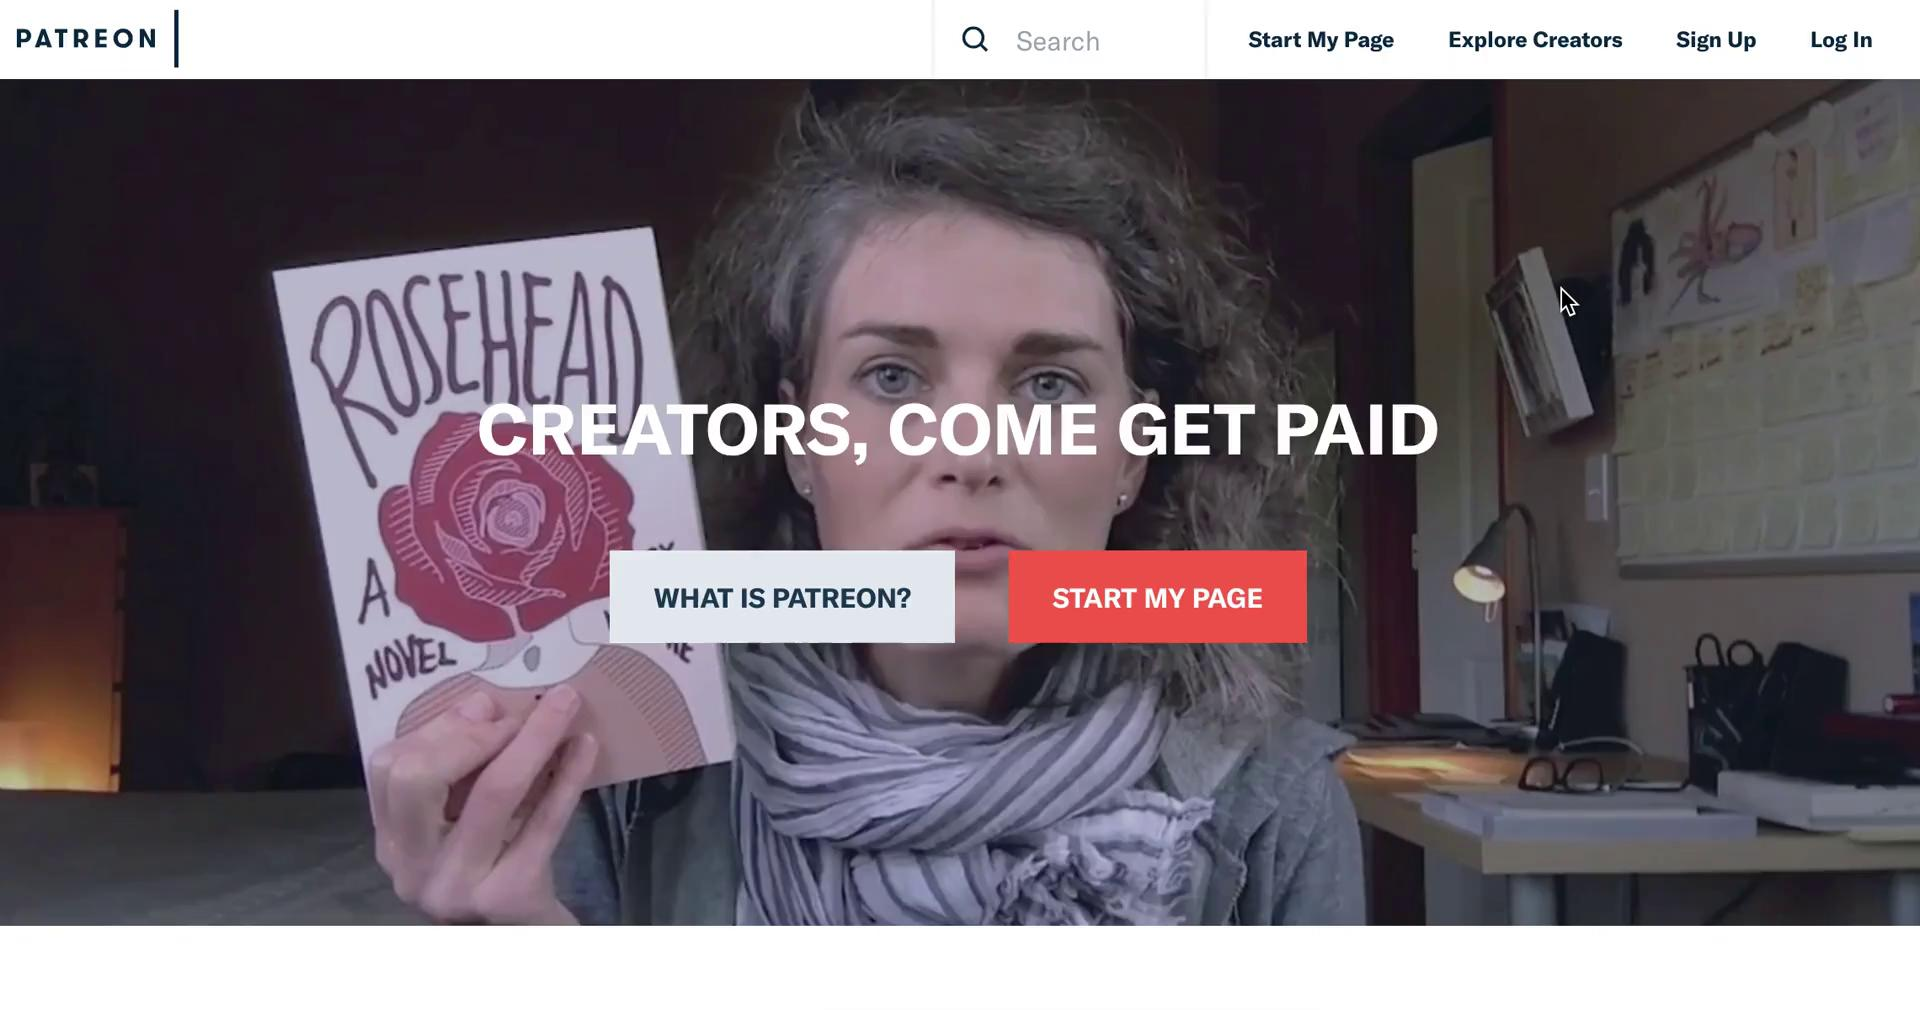 Screenshot of during Creating a campaign on Patreon user flow